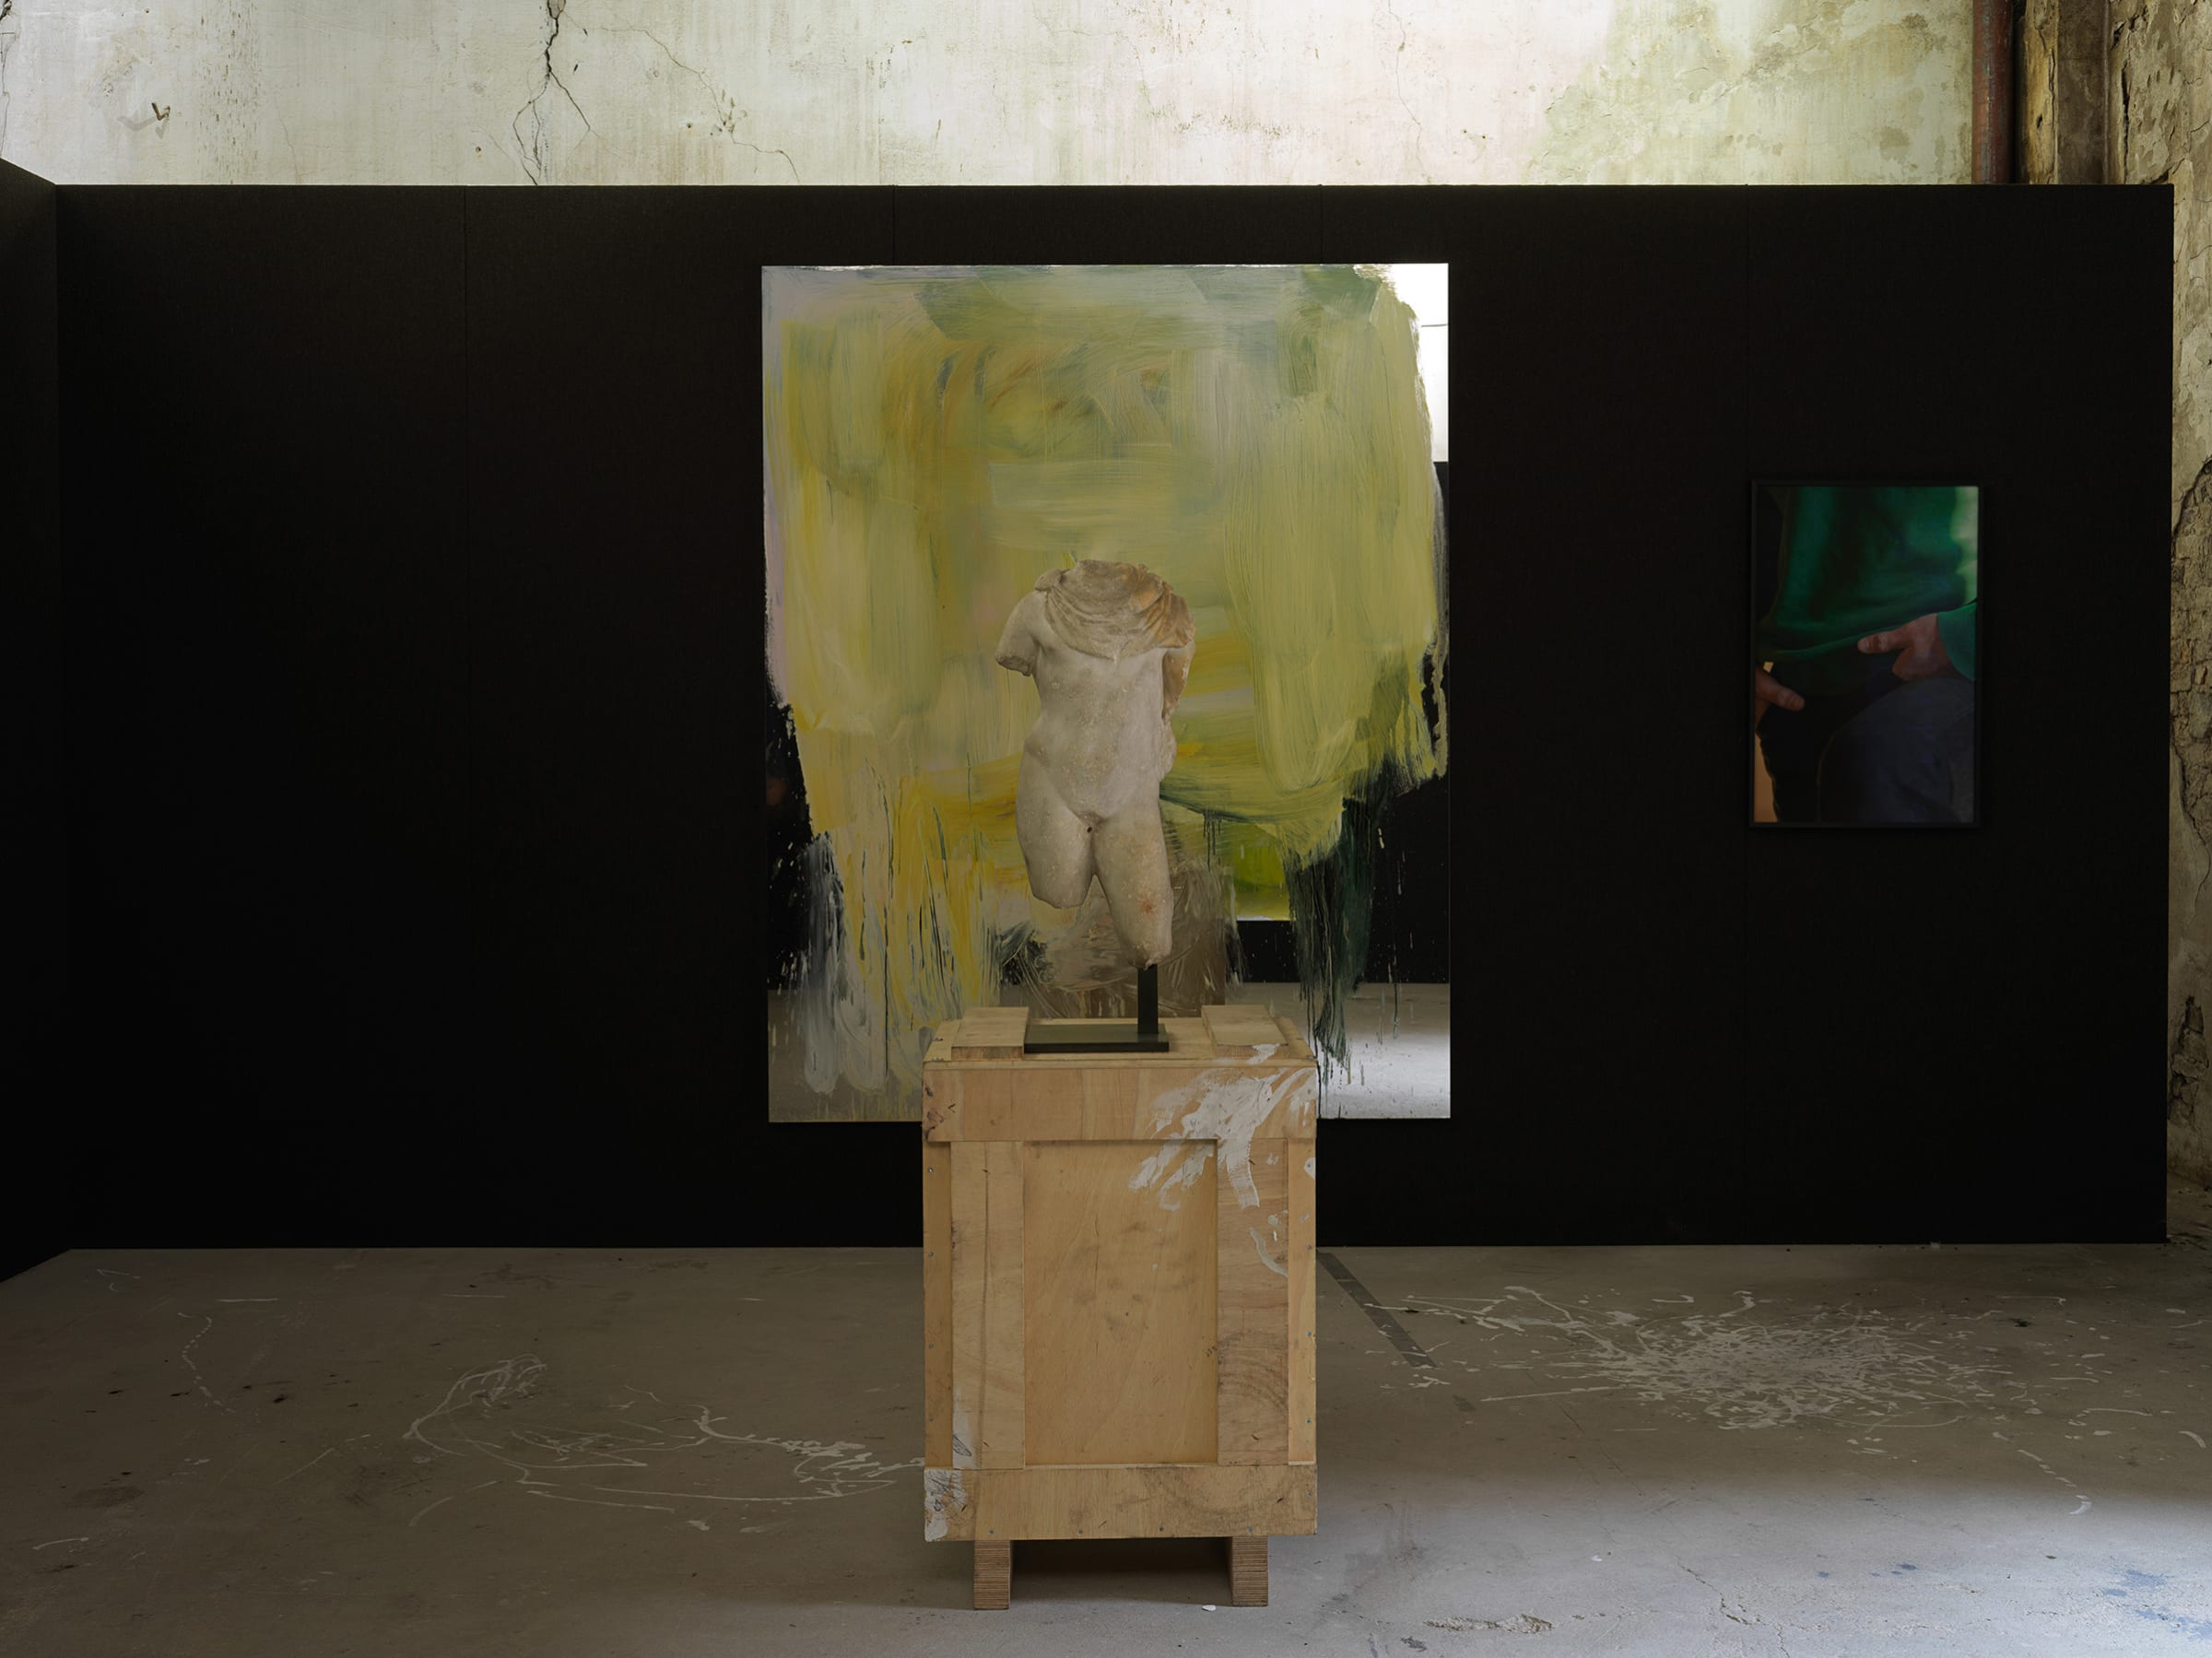 Small headless marble sculpture on top of a crate, placed in front of two colorful artworks.